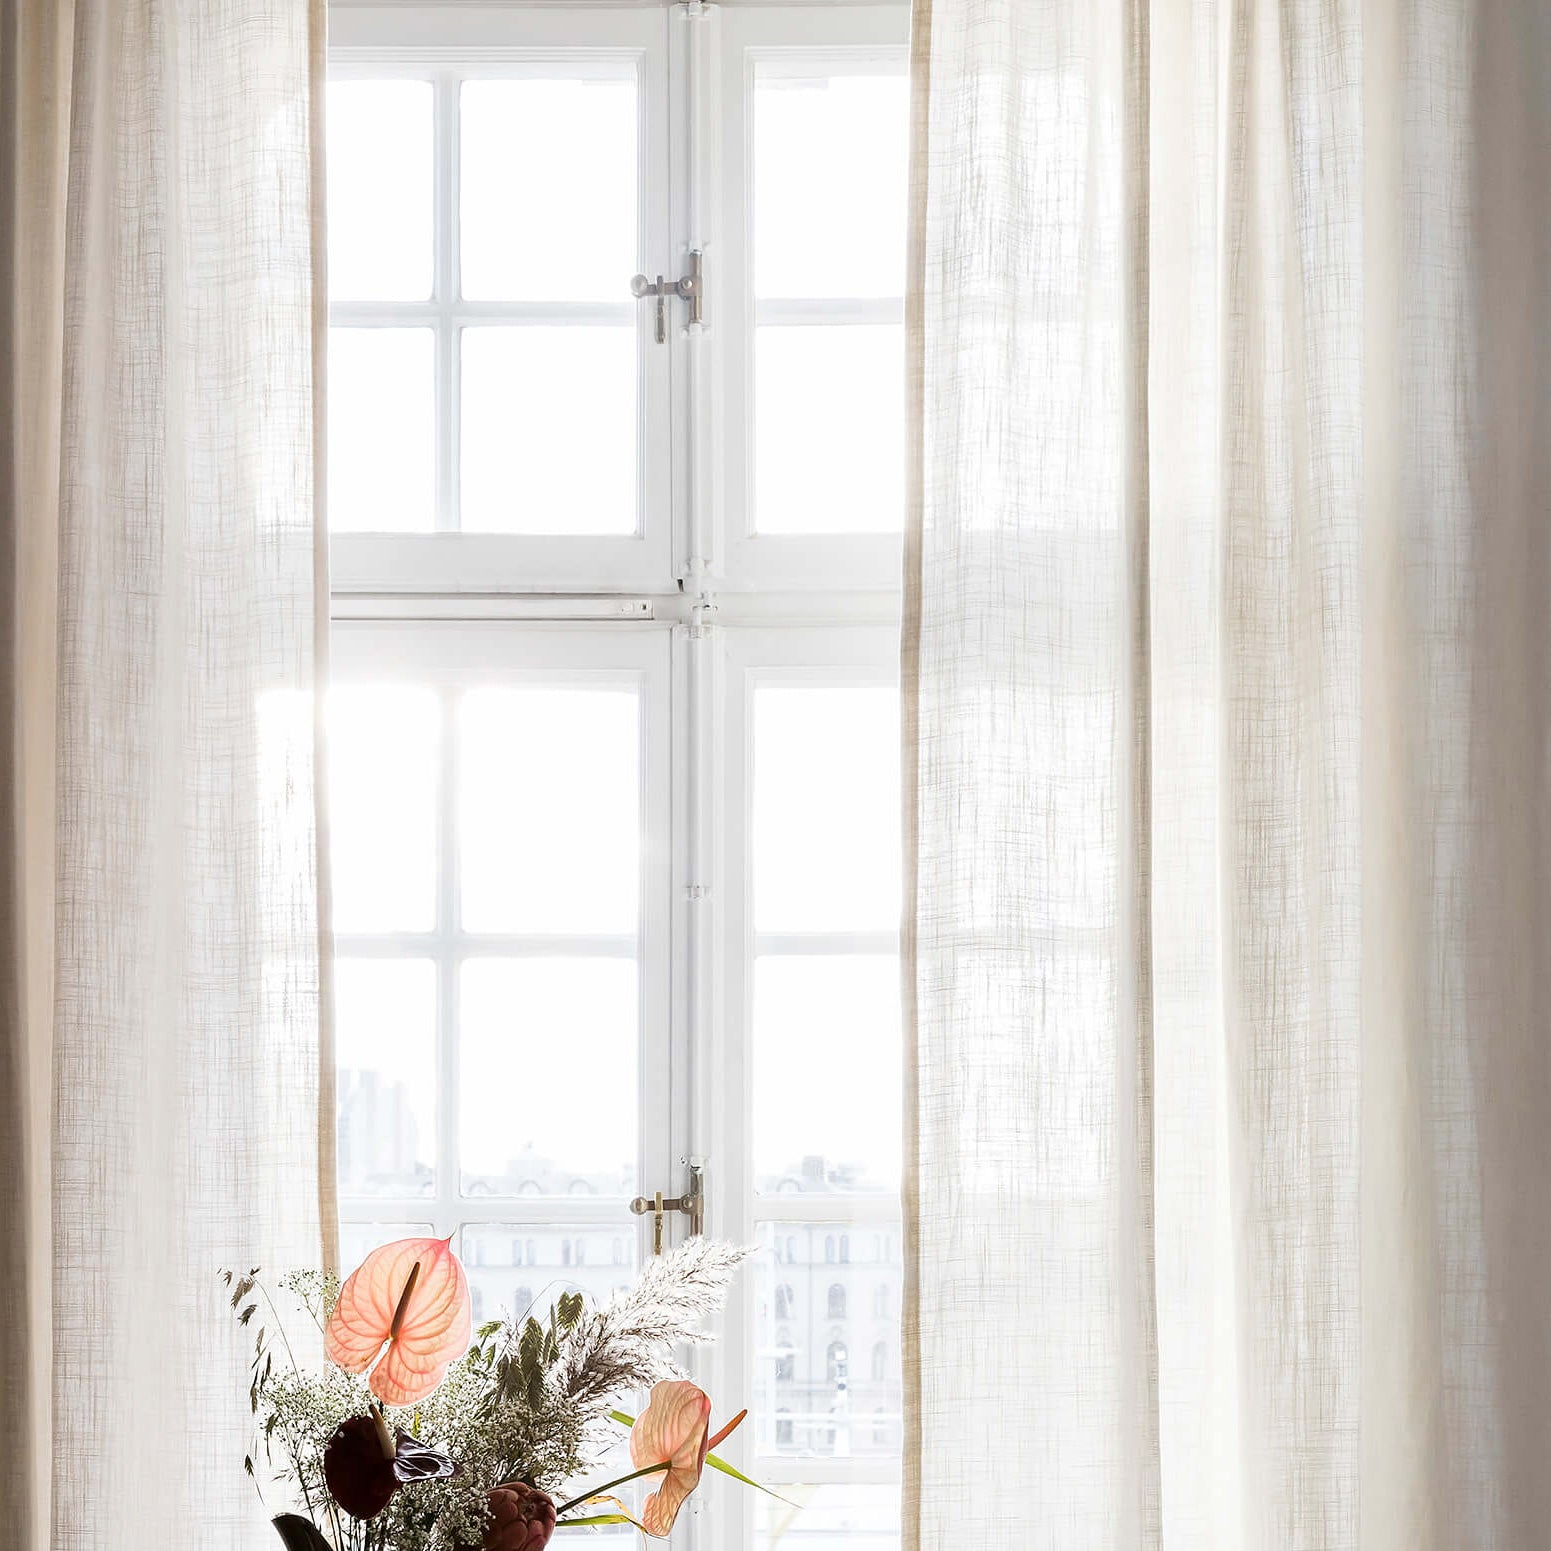 Curtain linen fabric sample – Off-white